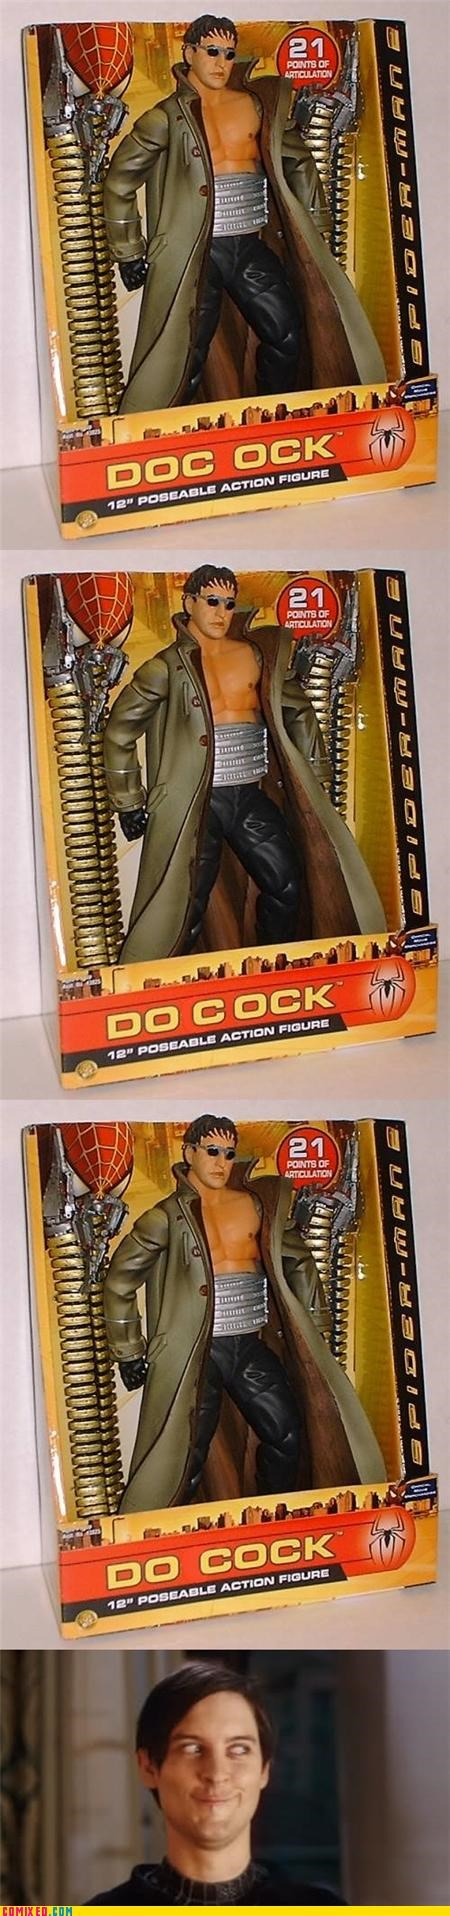 action figure doc ock Spider-Man TV - 4891666944